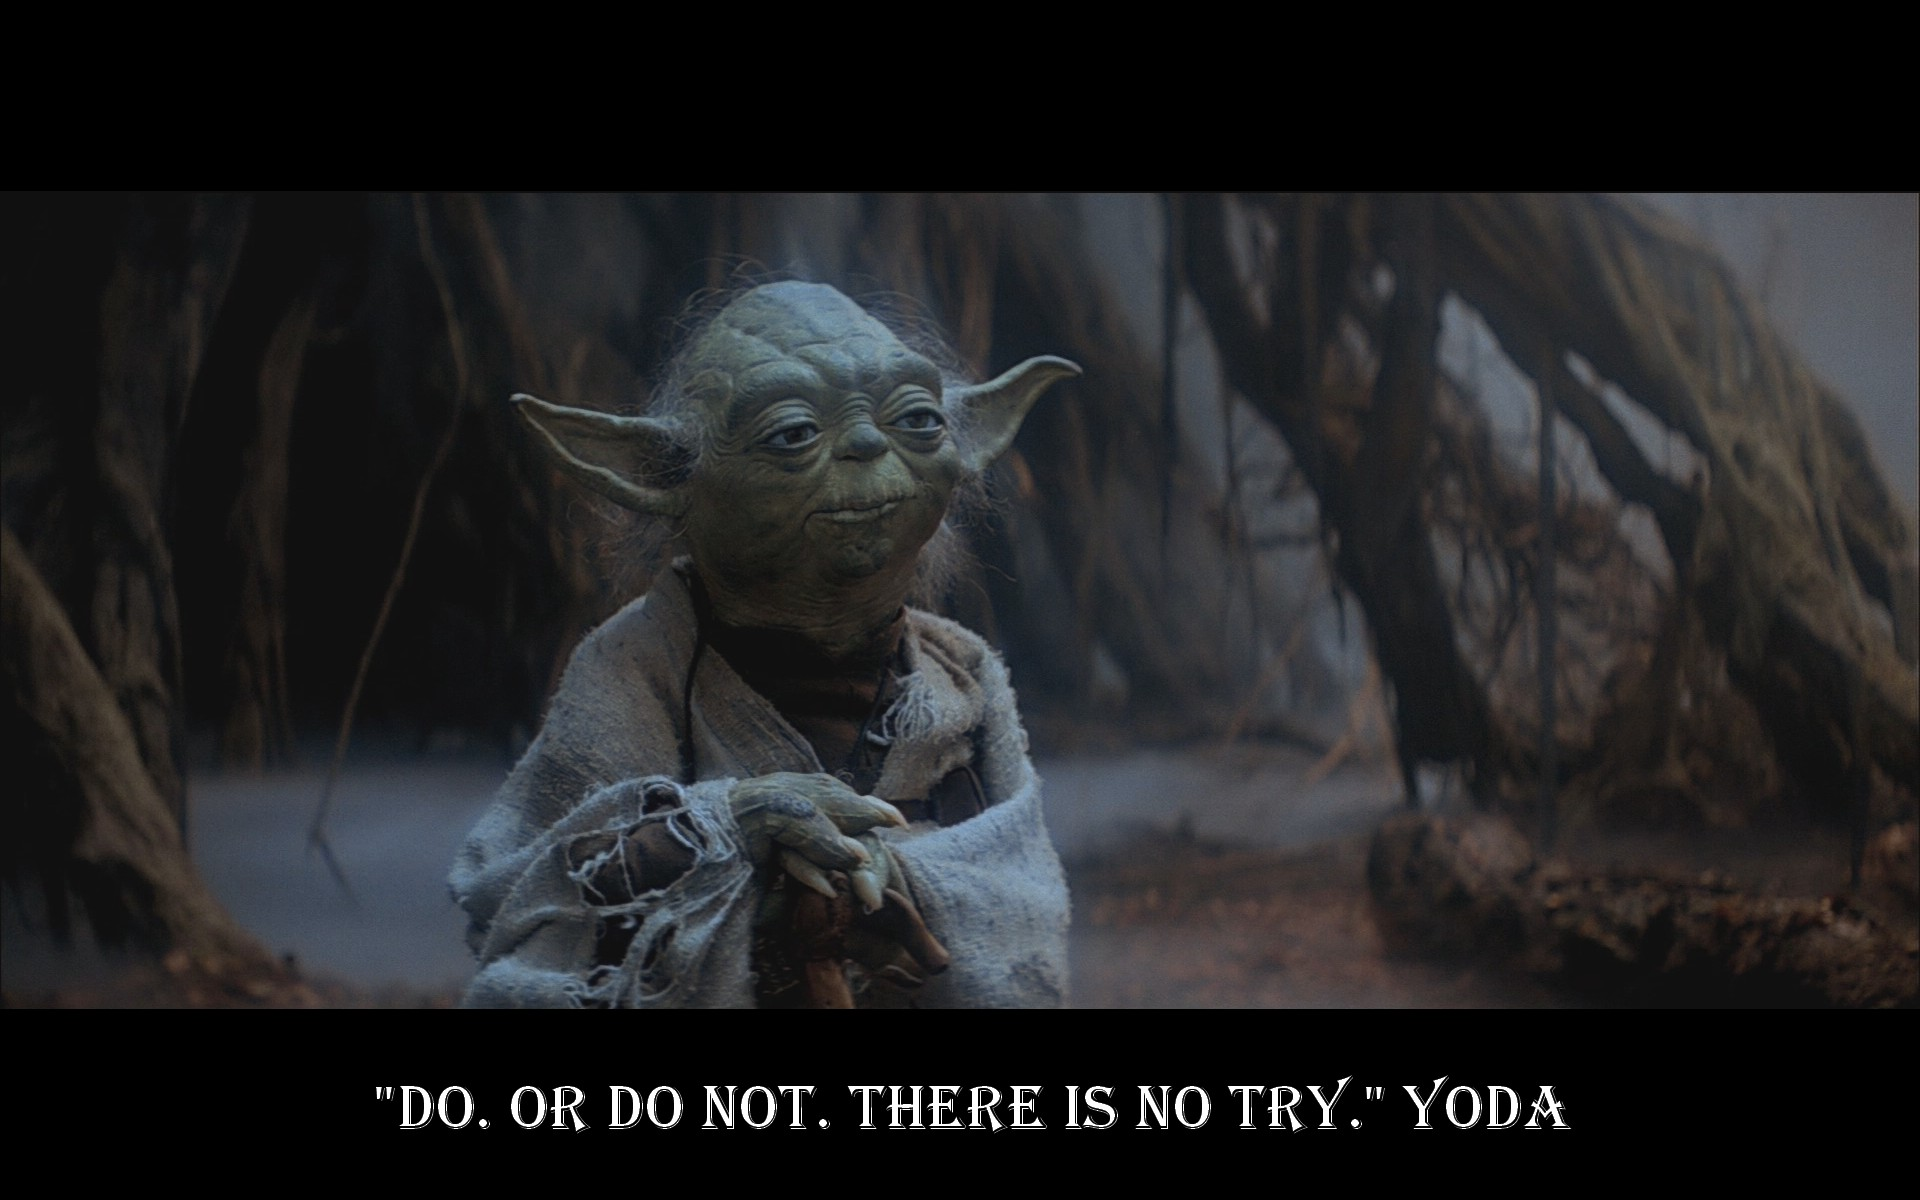 http://goodmovieslist.com/movie-quotes/There%20is%20no%20try%20-%20Yoda%20-%20wallpaper.jpg